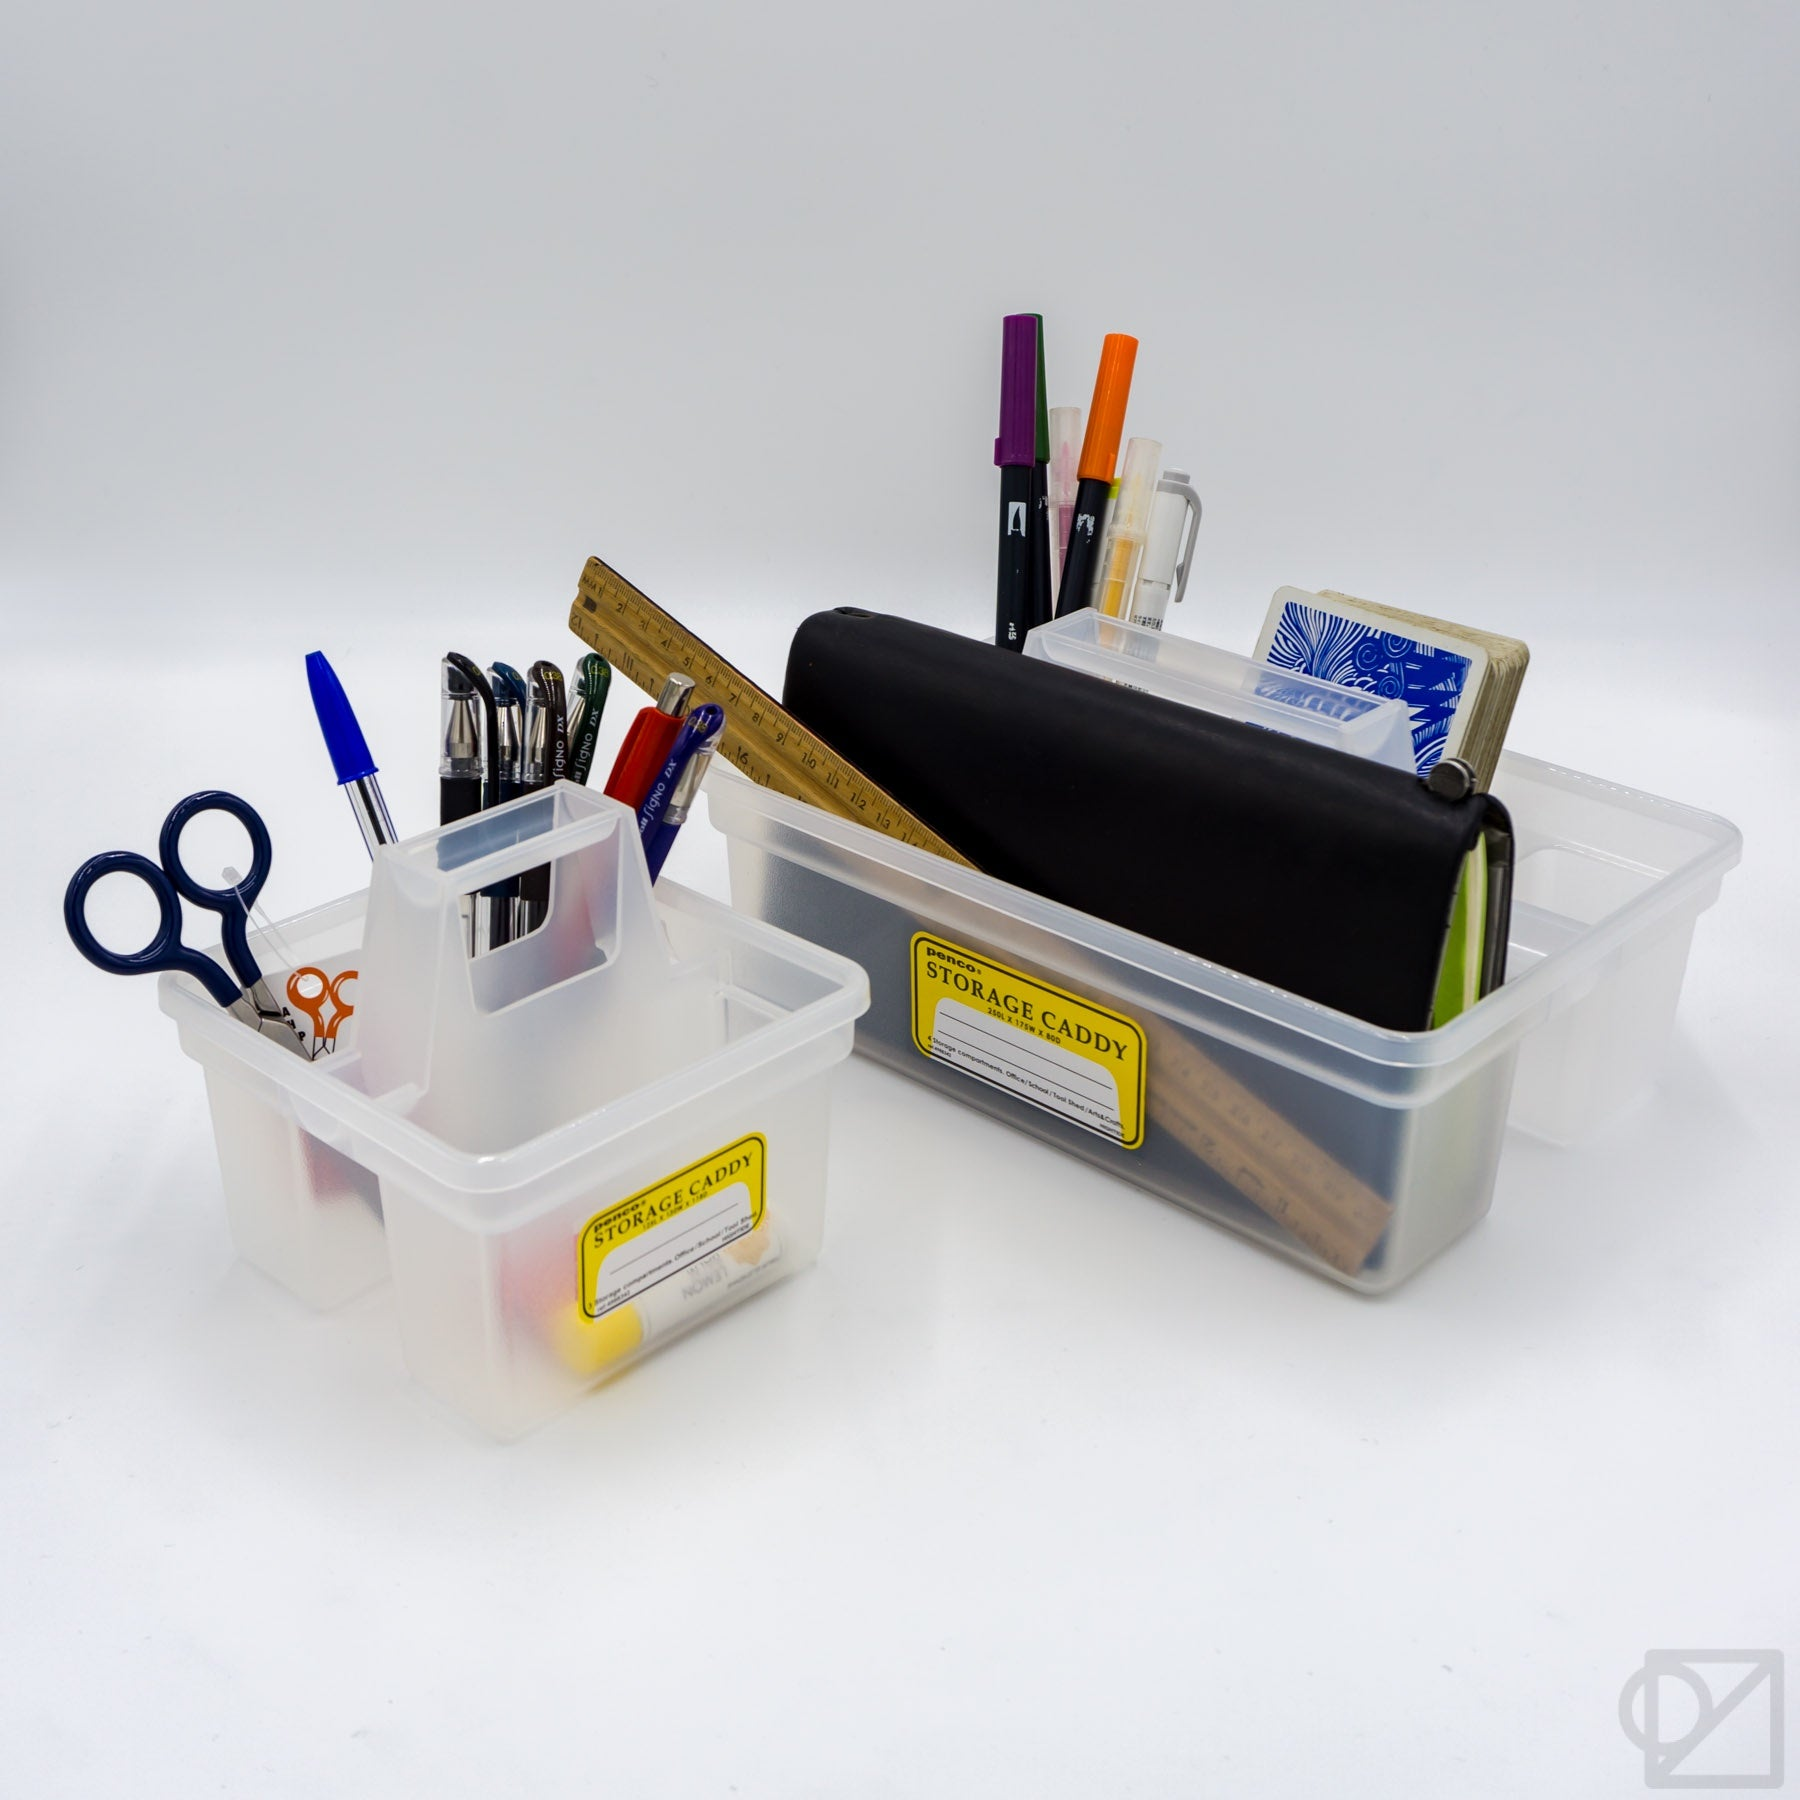 PENCO Storage Caddy Clear Collection